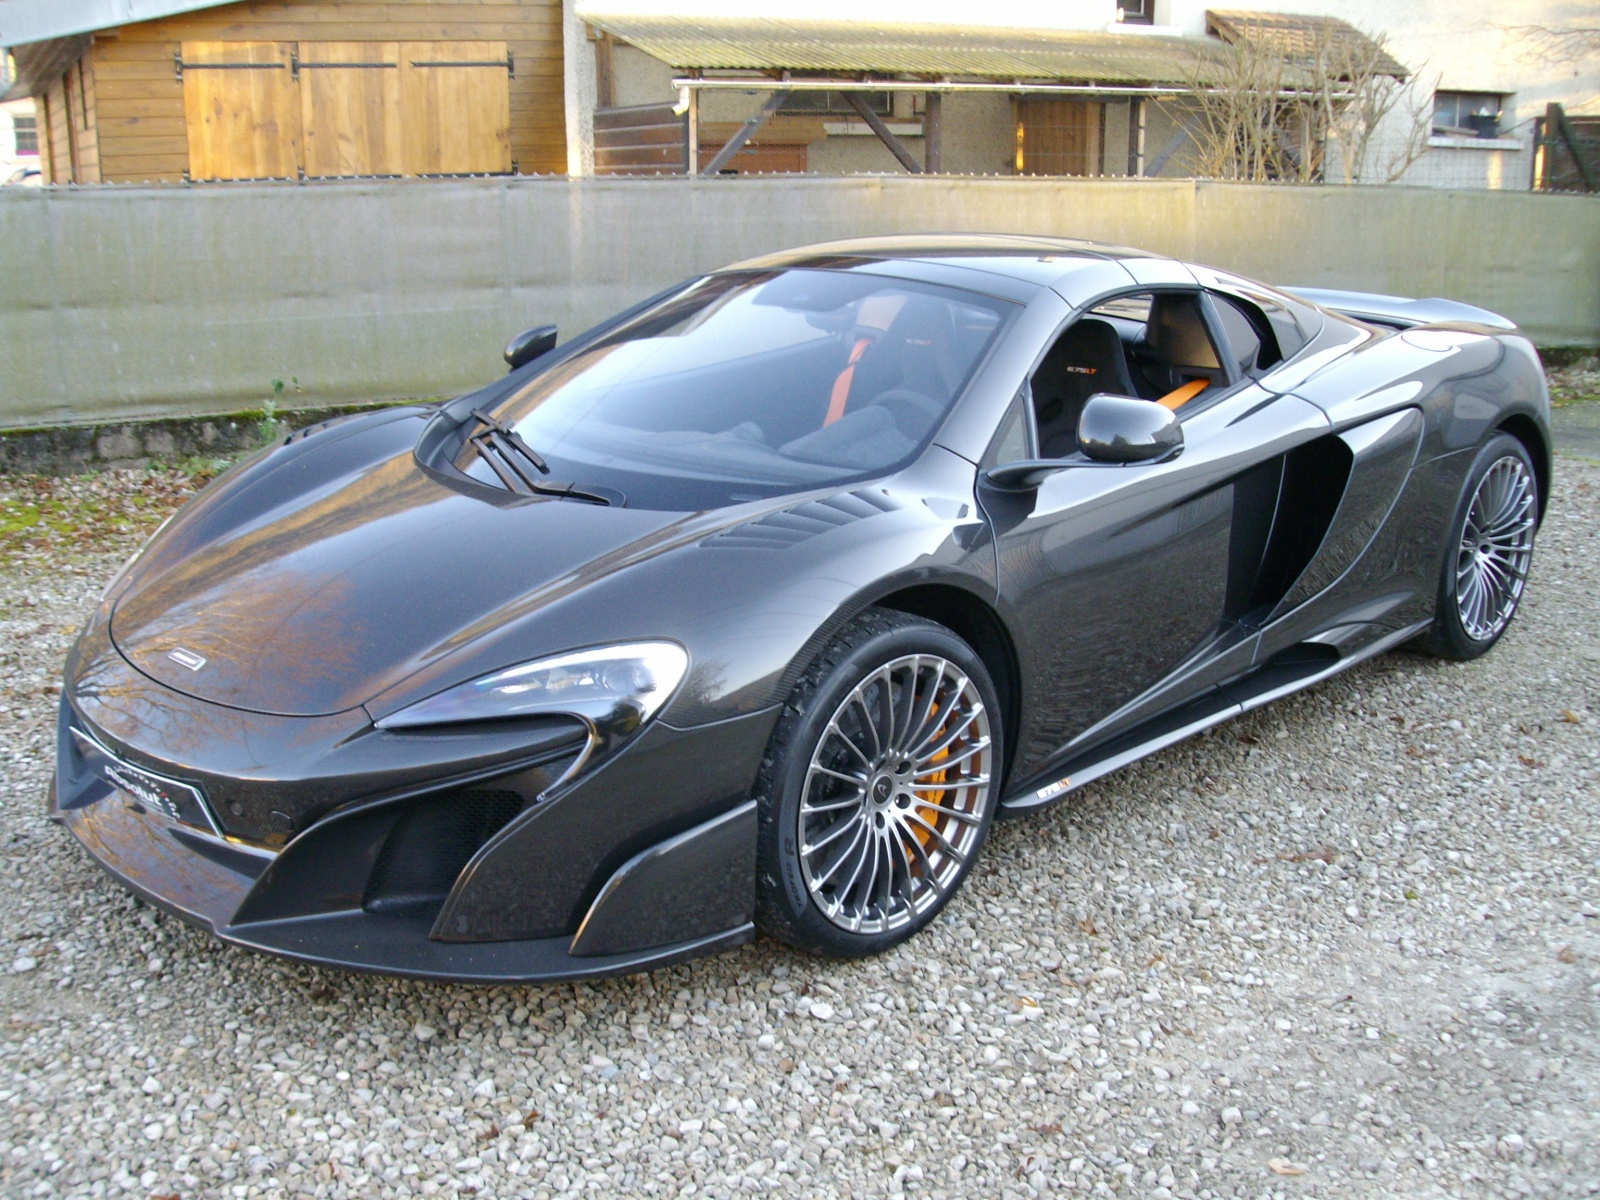 1 of 25 McLaren 675 LT Spider Carbon Series for Sale at €750,000 ...